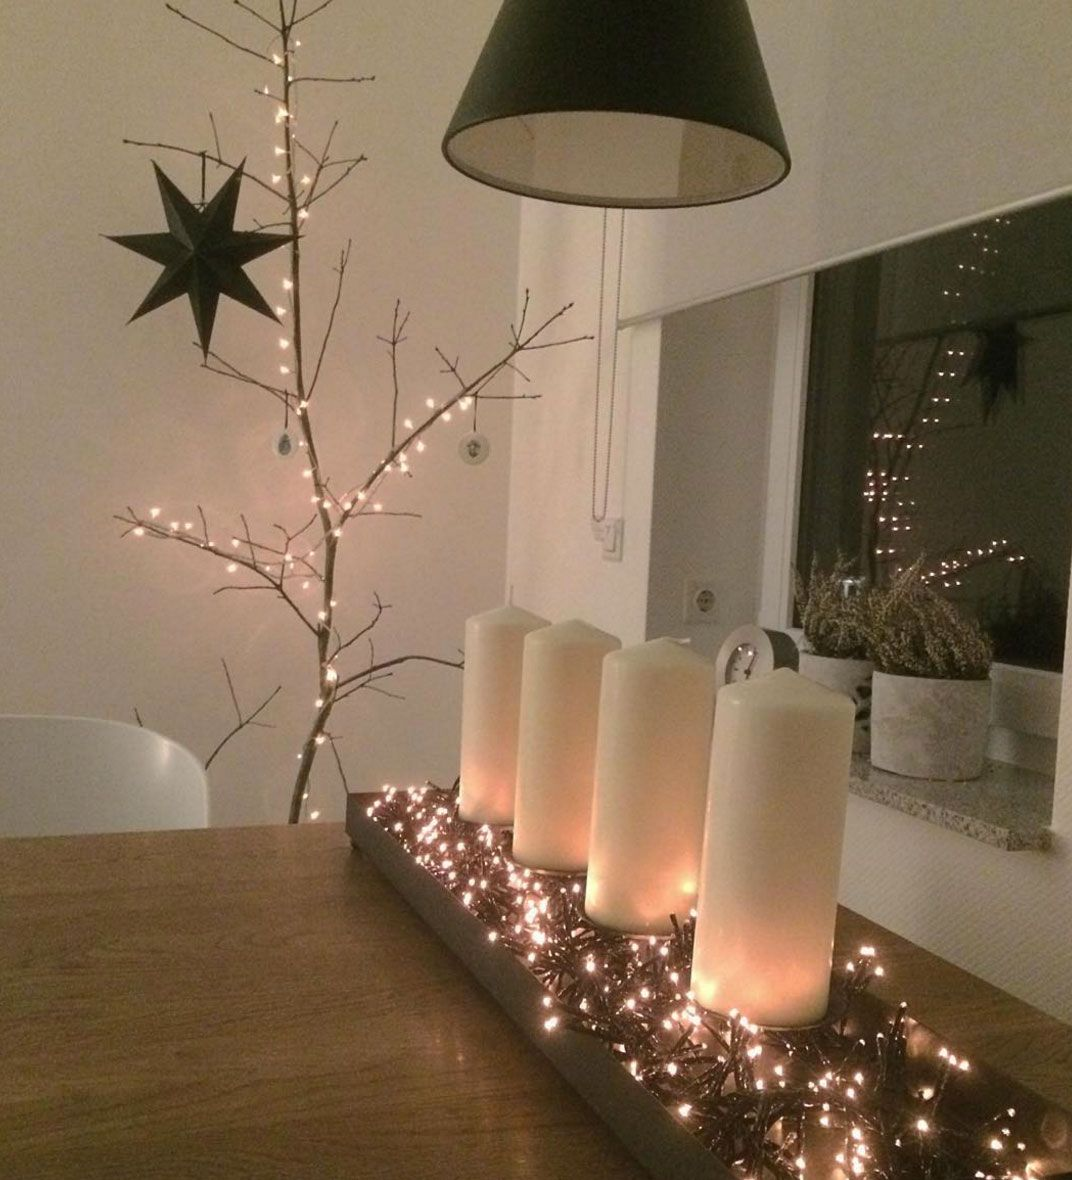 deko-kerzen-advent-mit-lichterkette